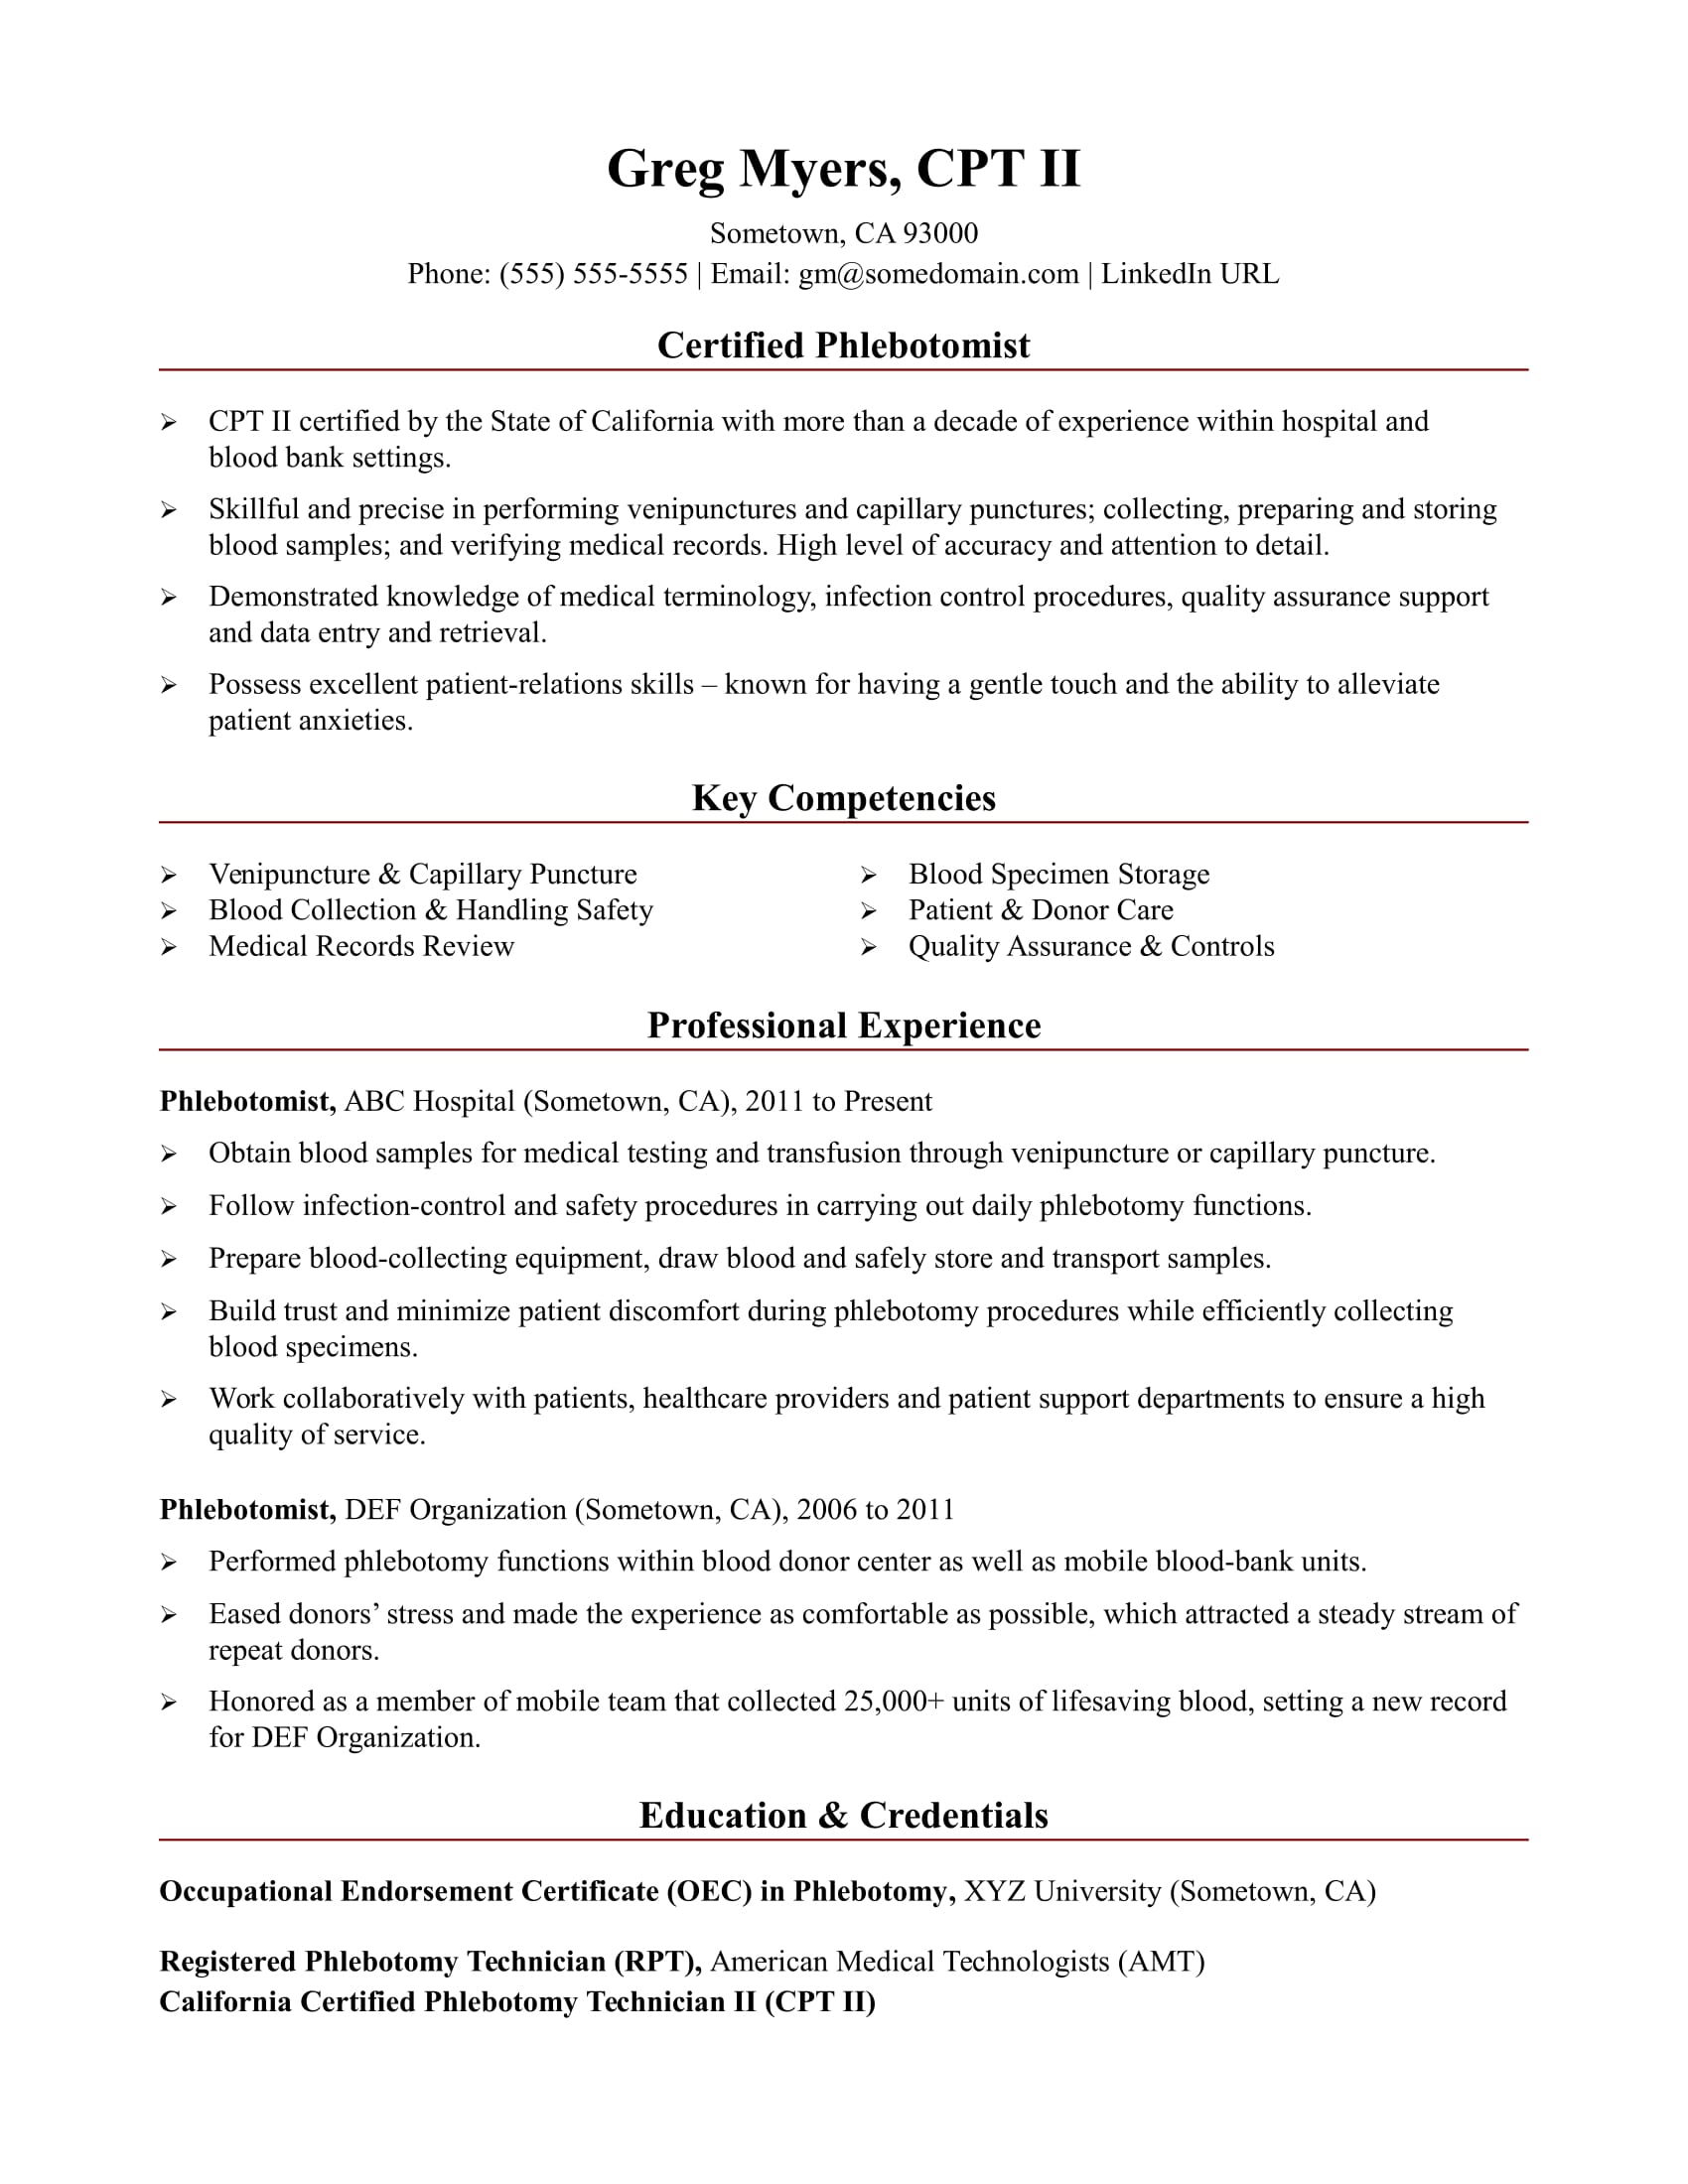 Sample Resume For A Phlebotomist  Hospital Resume Examples